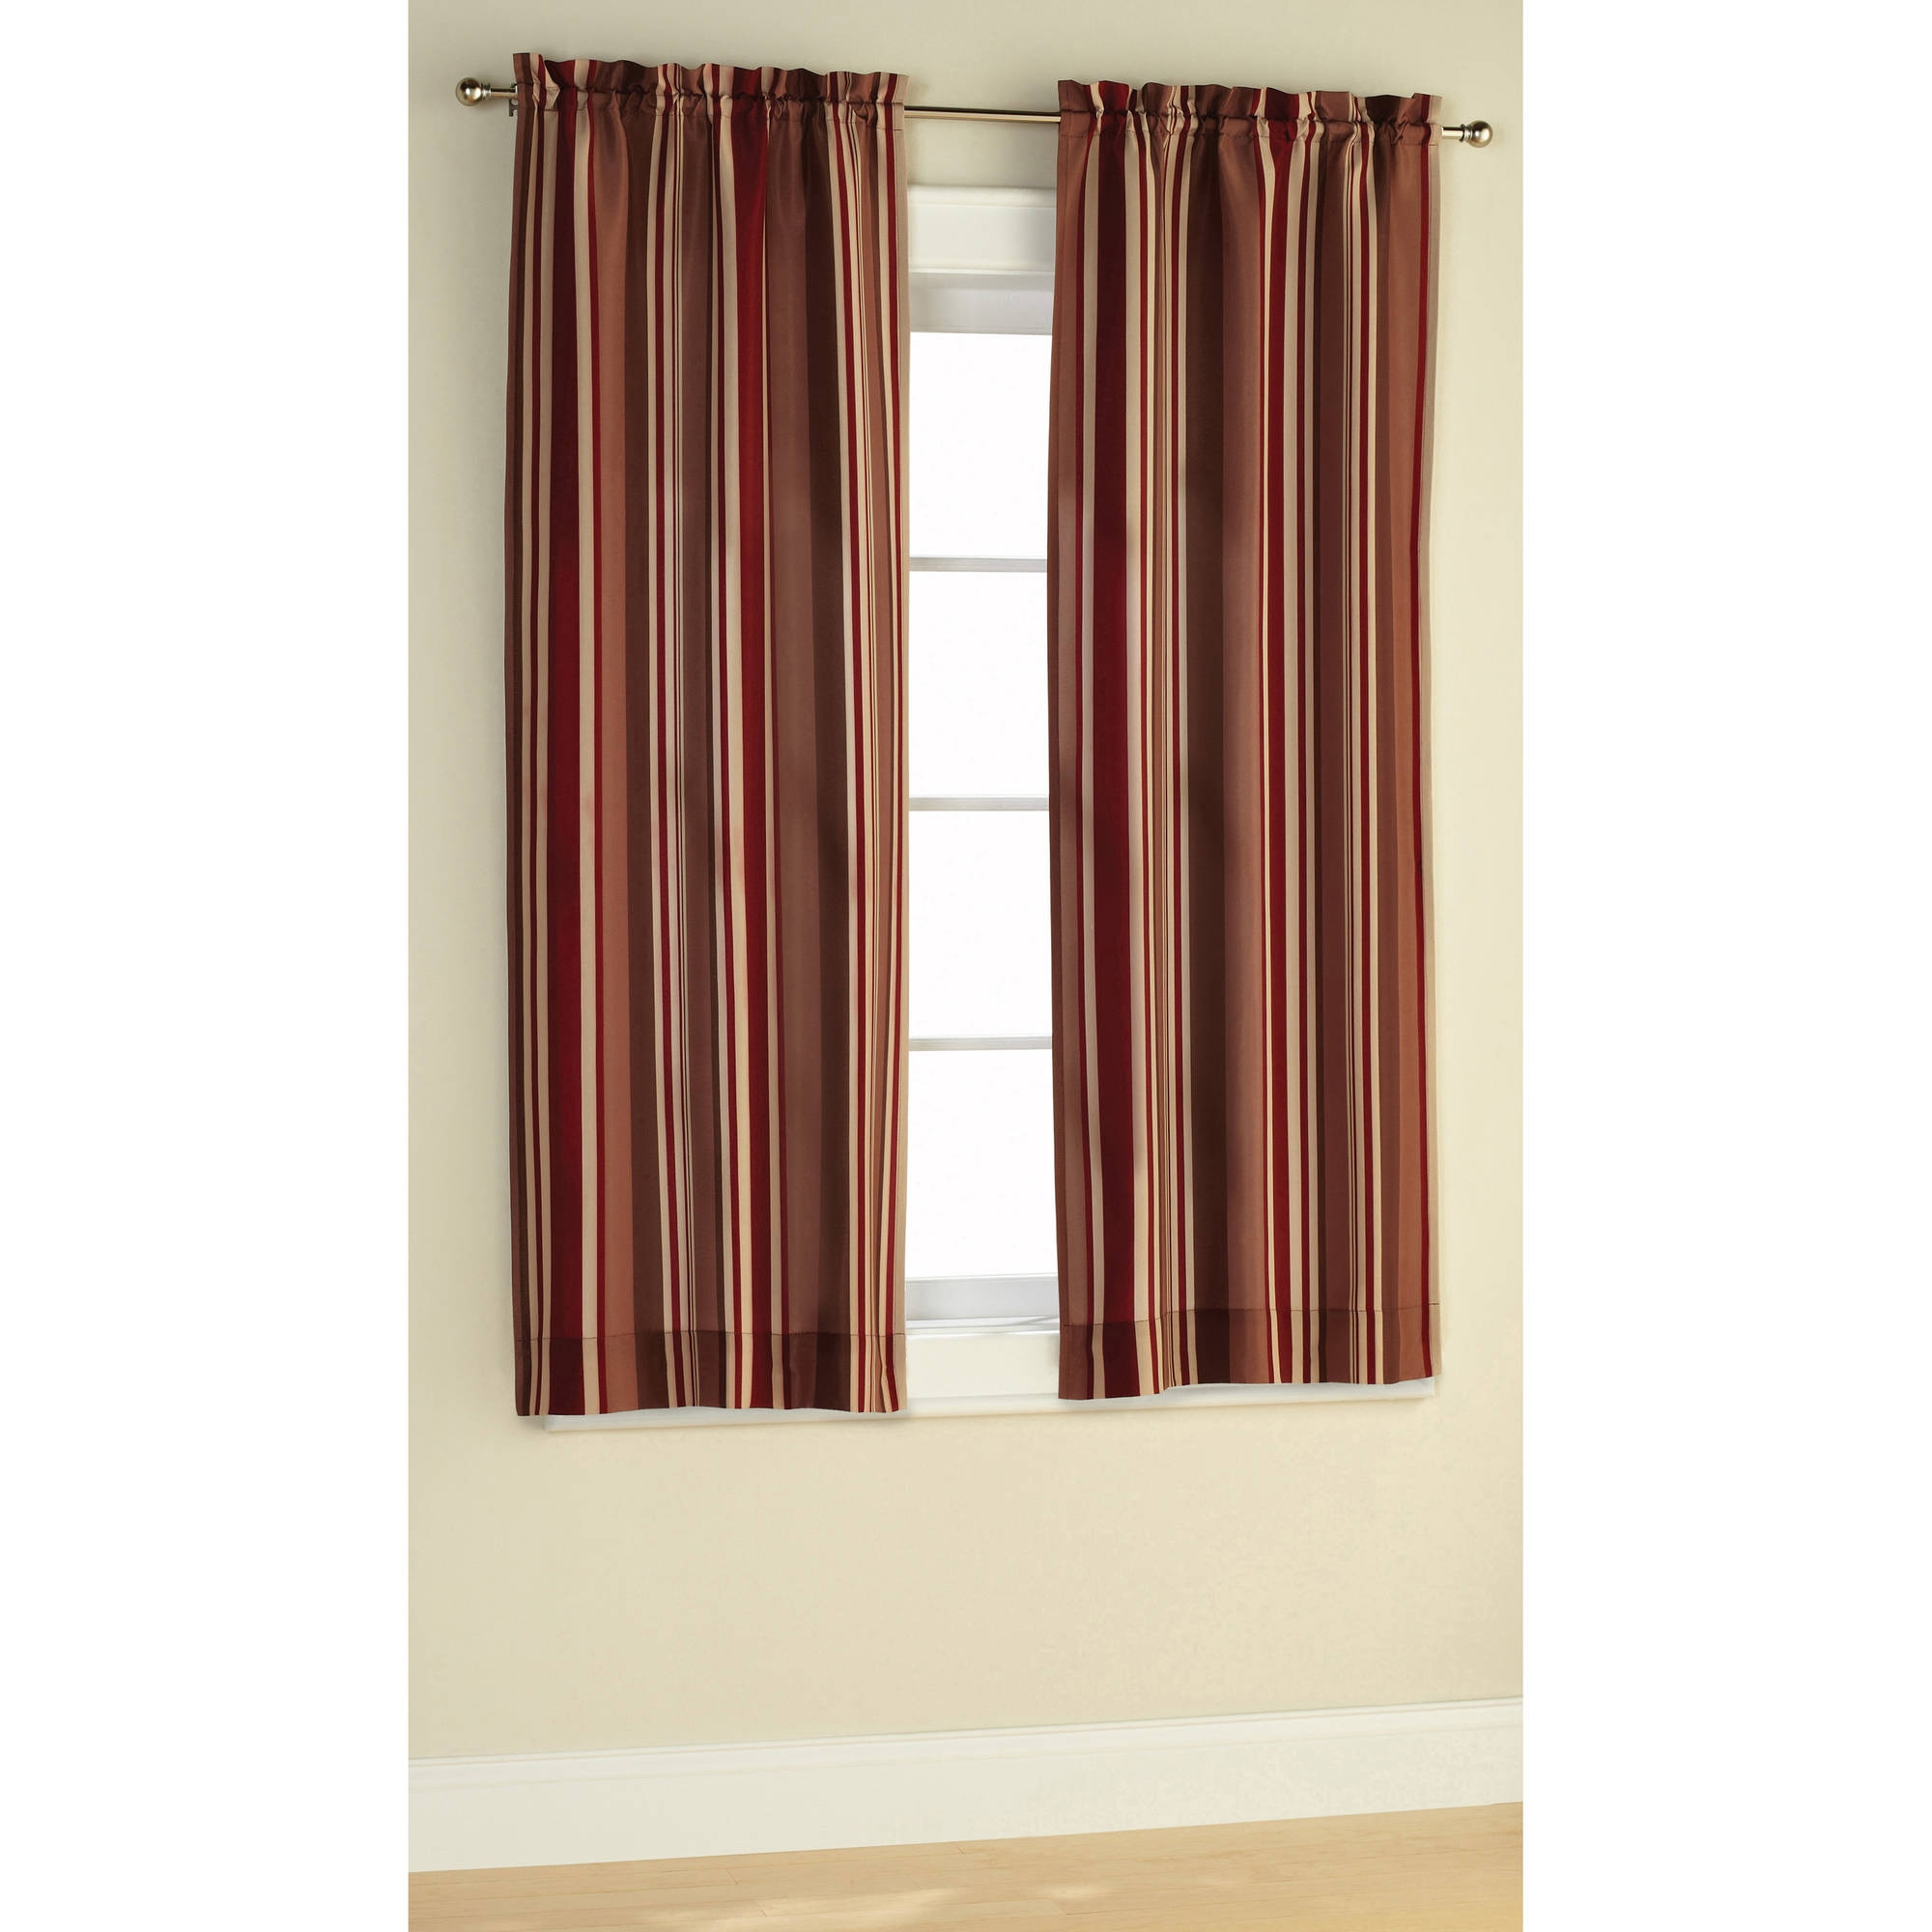 7c630965 D5e8 4dd2 Bb79 Af4742d8639118ab45a84df8e5086323cc7f87e6a0061 For Stripe Curtains (Image 2 of 25)